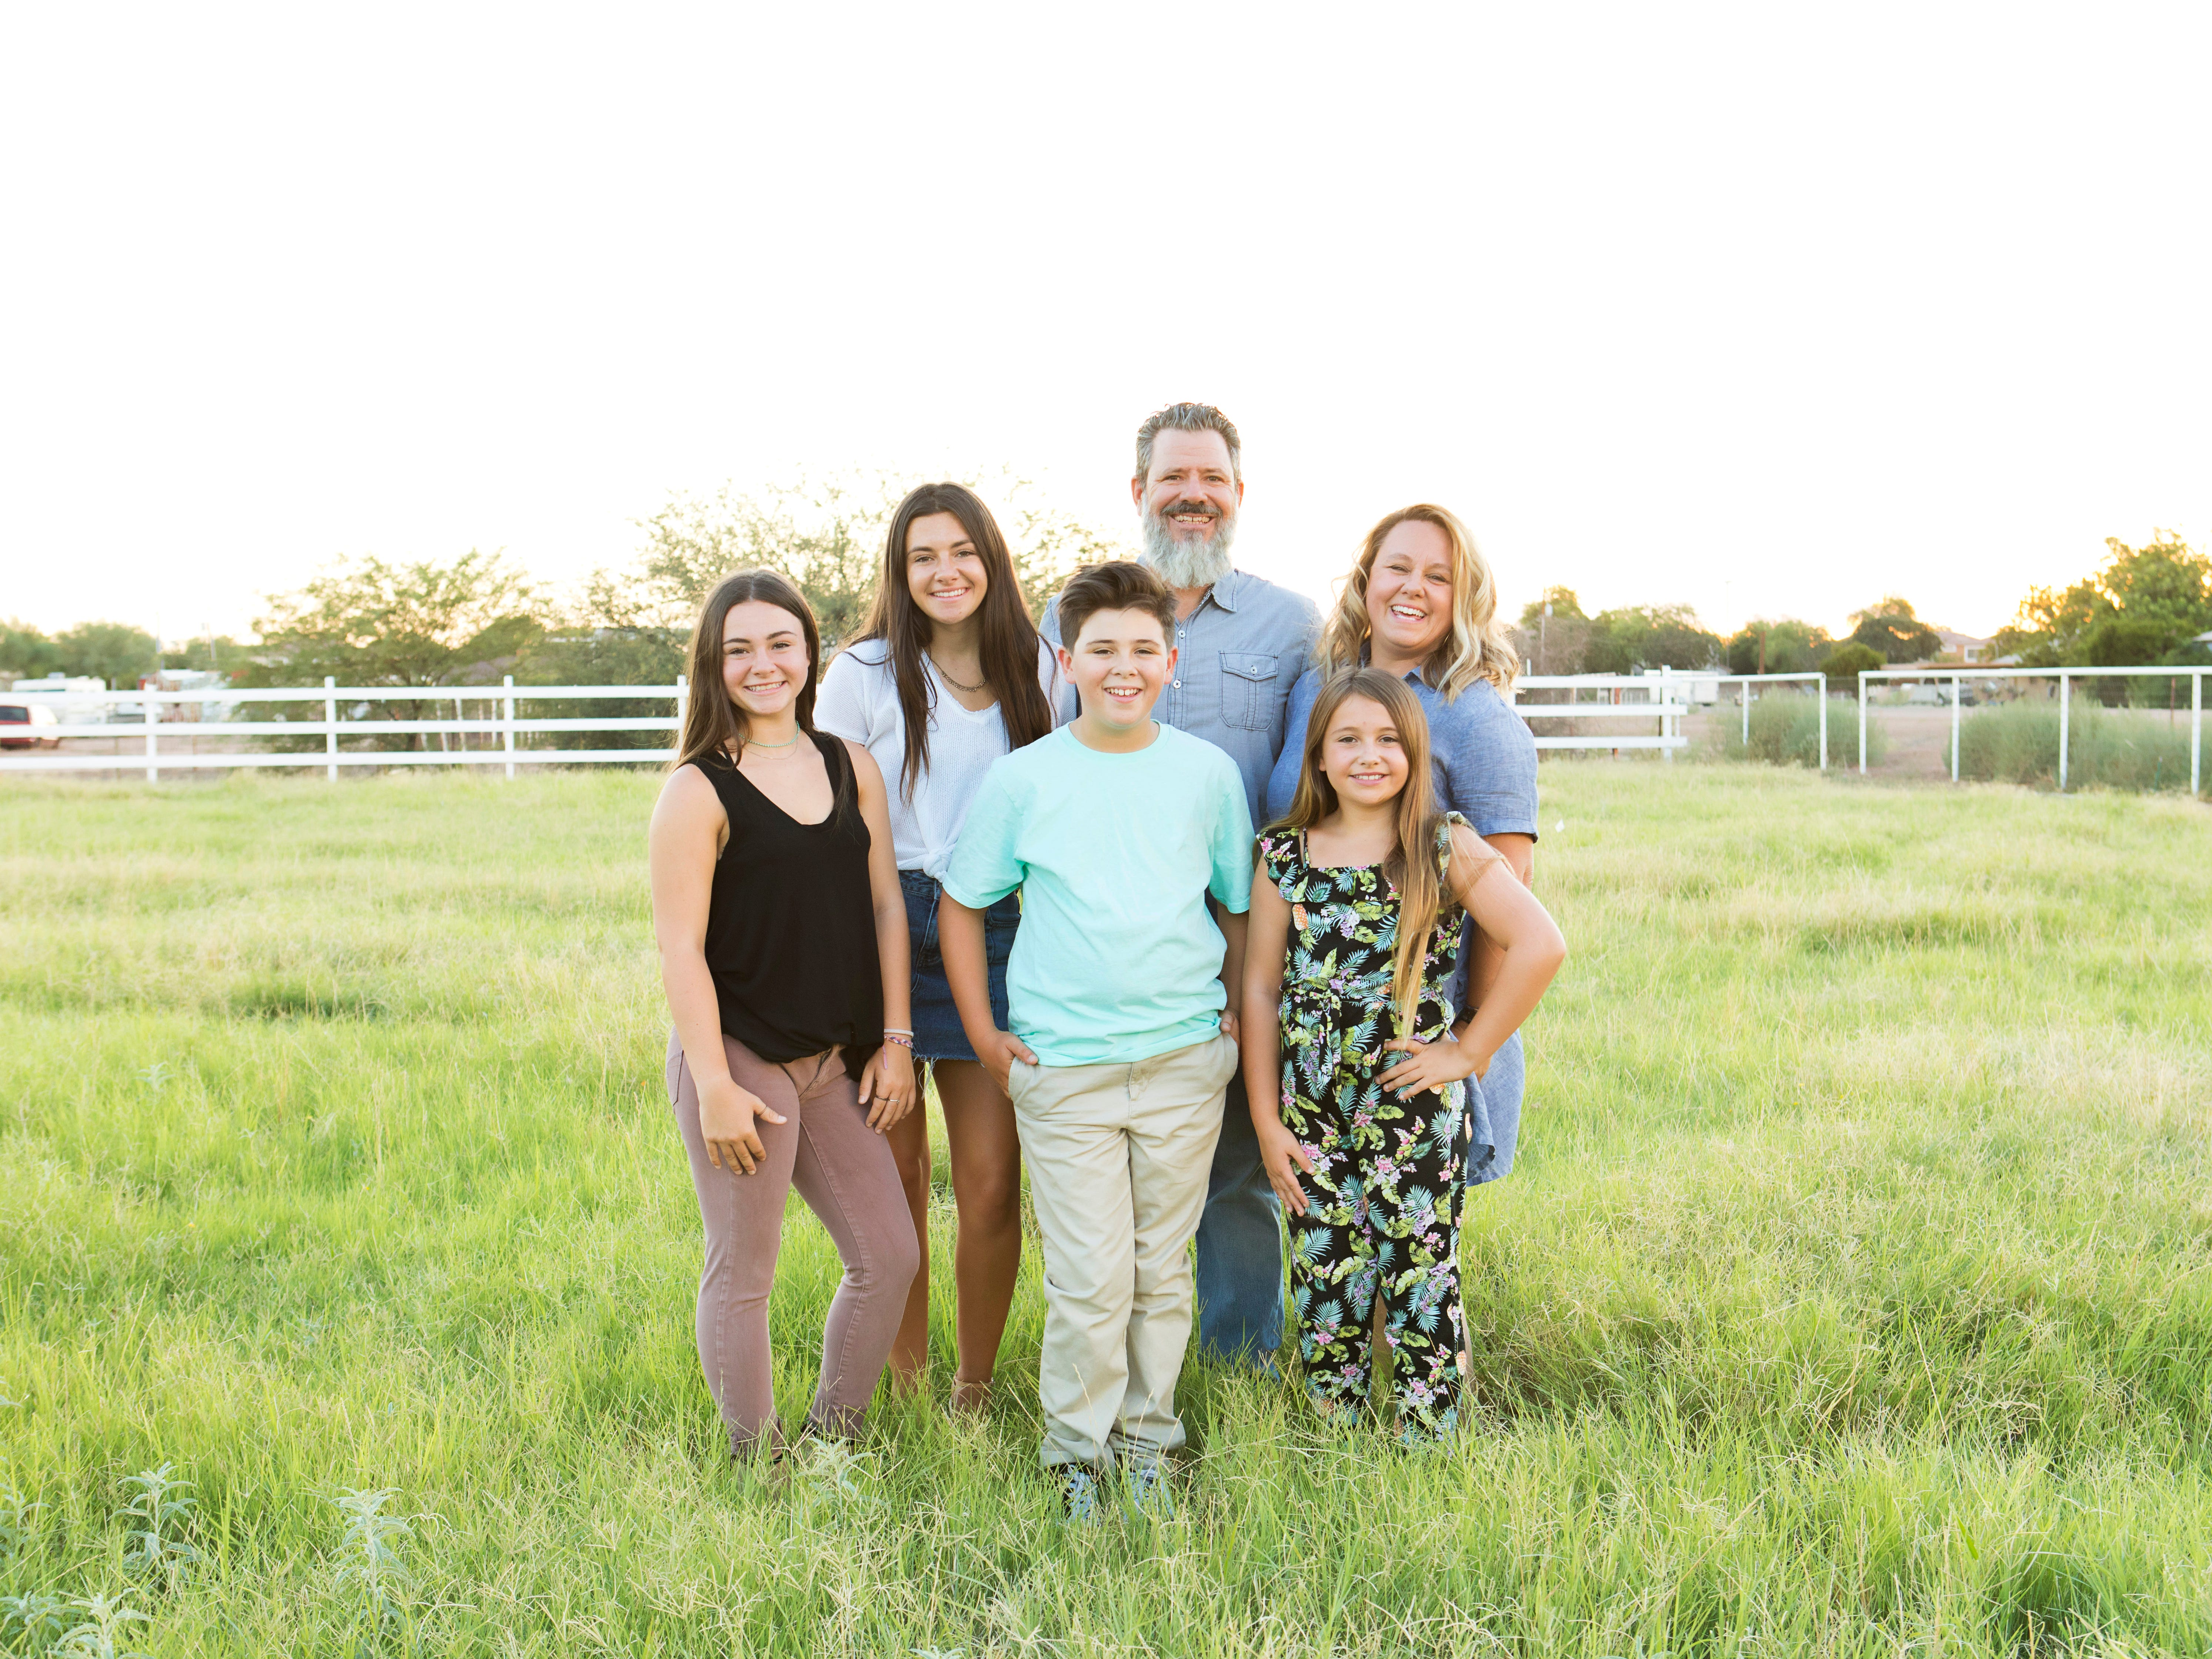 Ryan and Jenn Sutton with their four kids posing on their meadow. Jenn, a photographer, was inspired by the home's potential for photo opportunities. Ryan runs a mortgage bank in Scottsdale with his father.